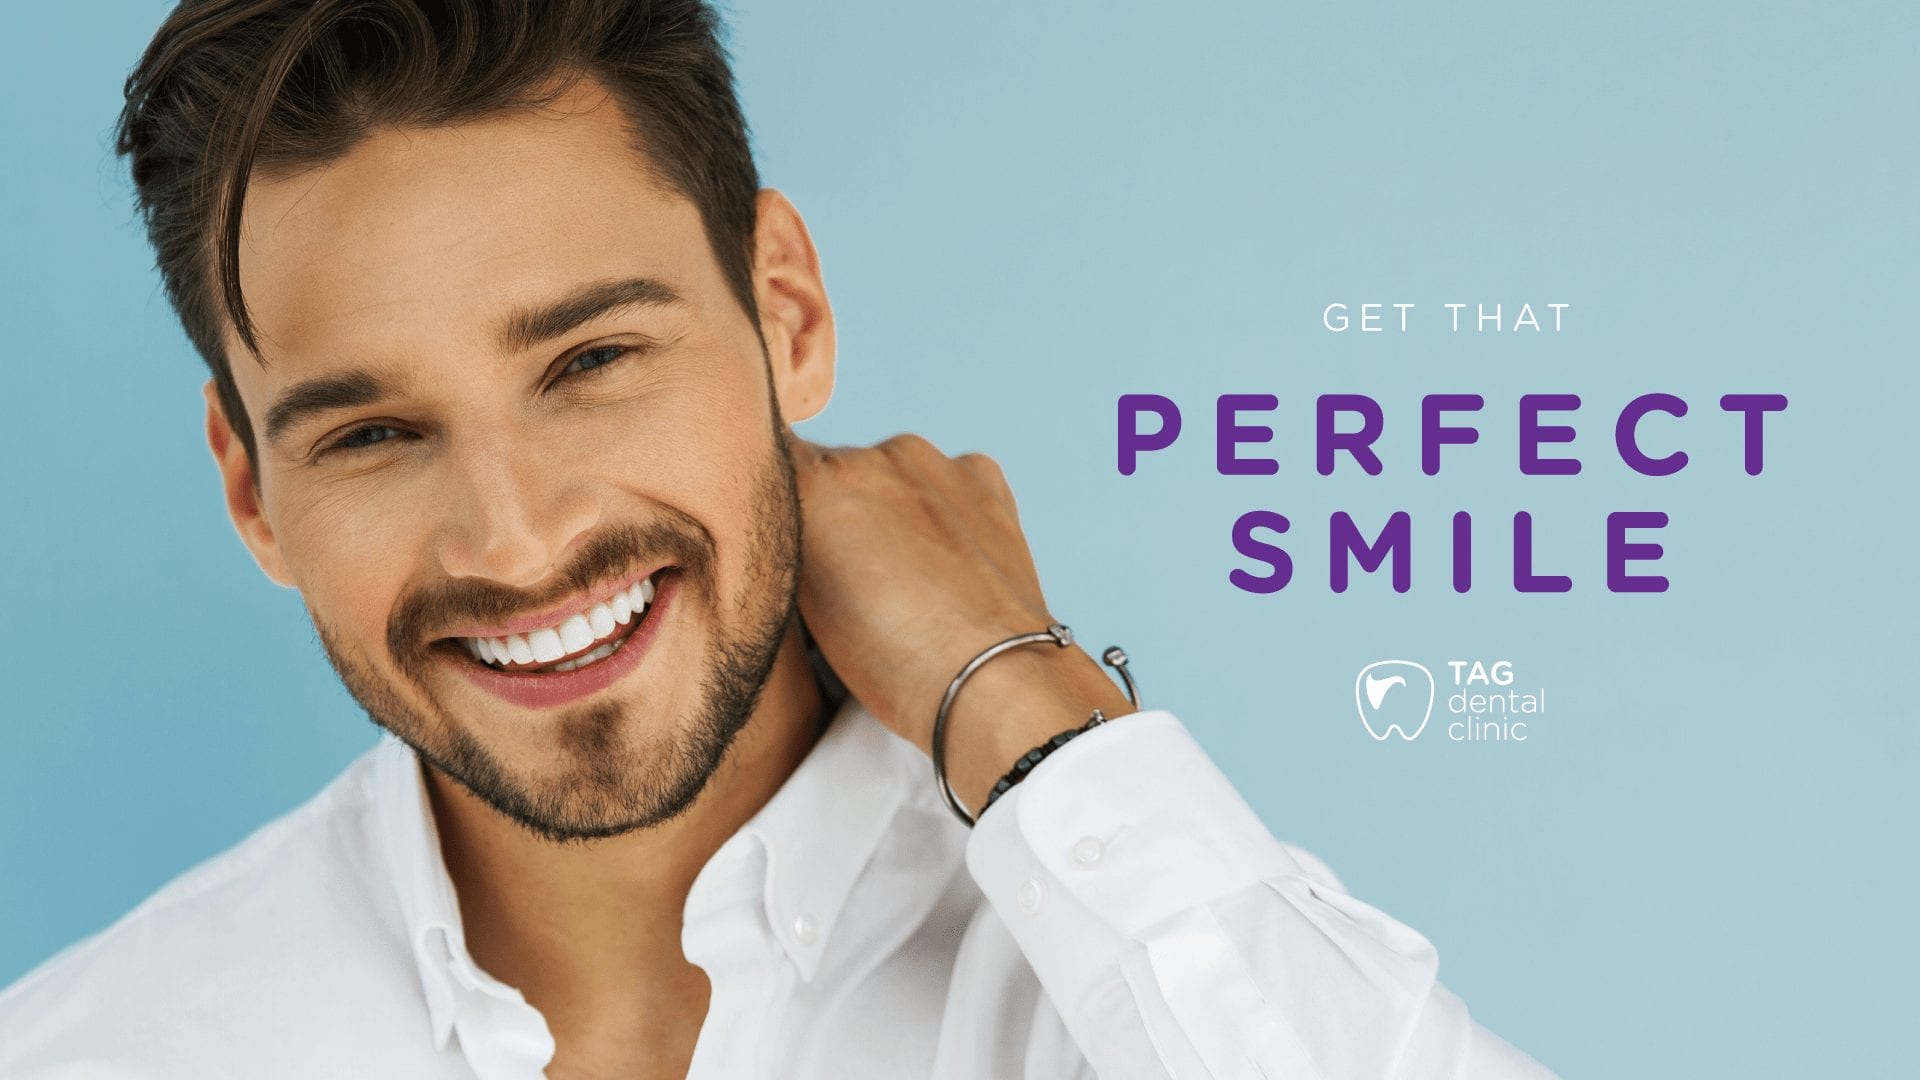 TAG Dental Clinic - Get That Perfect Smile